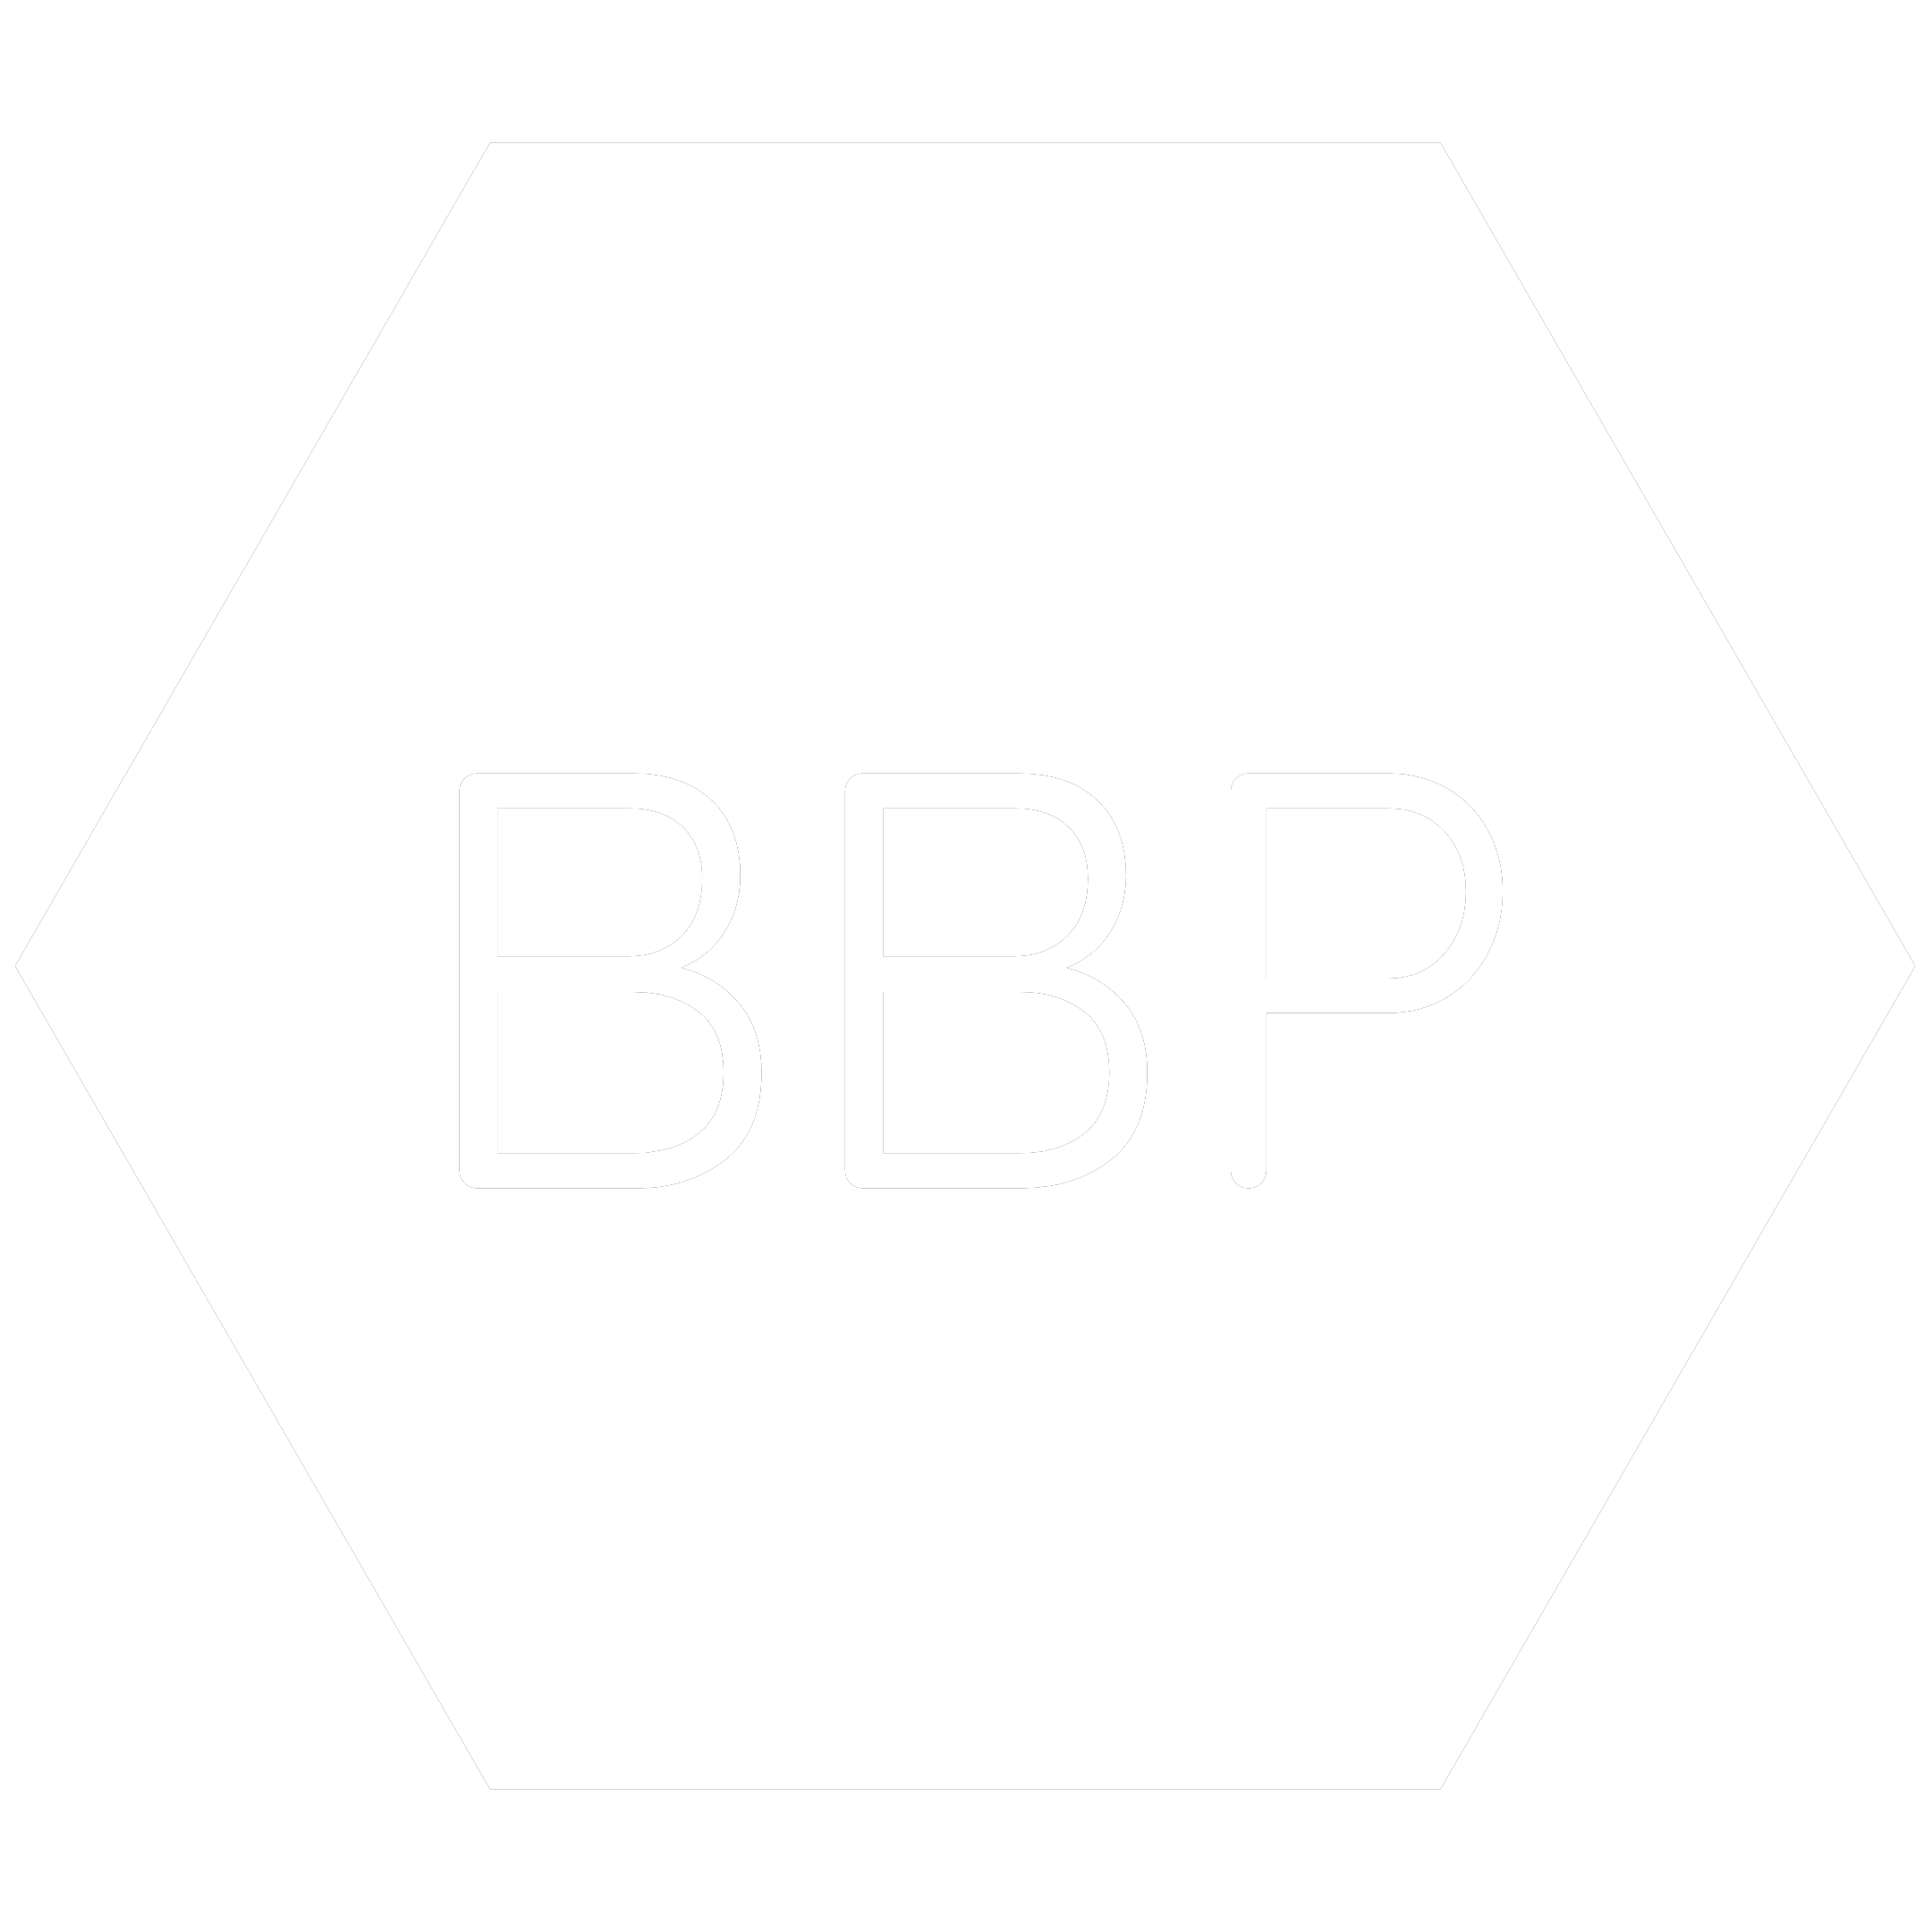 White hexagon icon with the chemical symbol for Butyl Benzyl  which is a banned RoHS substance.